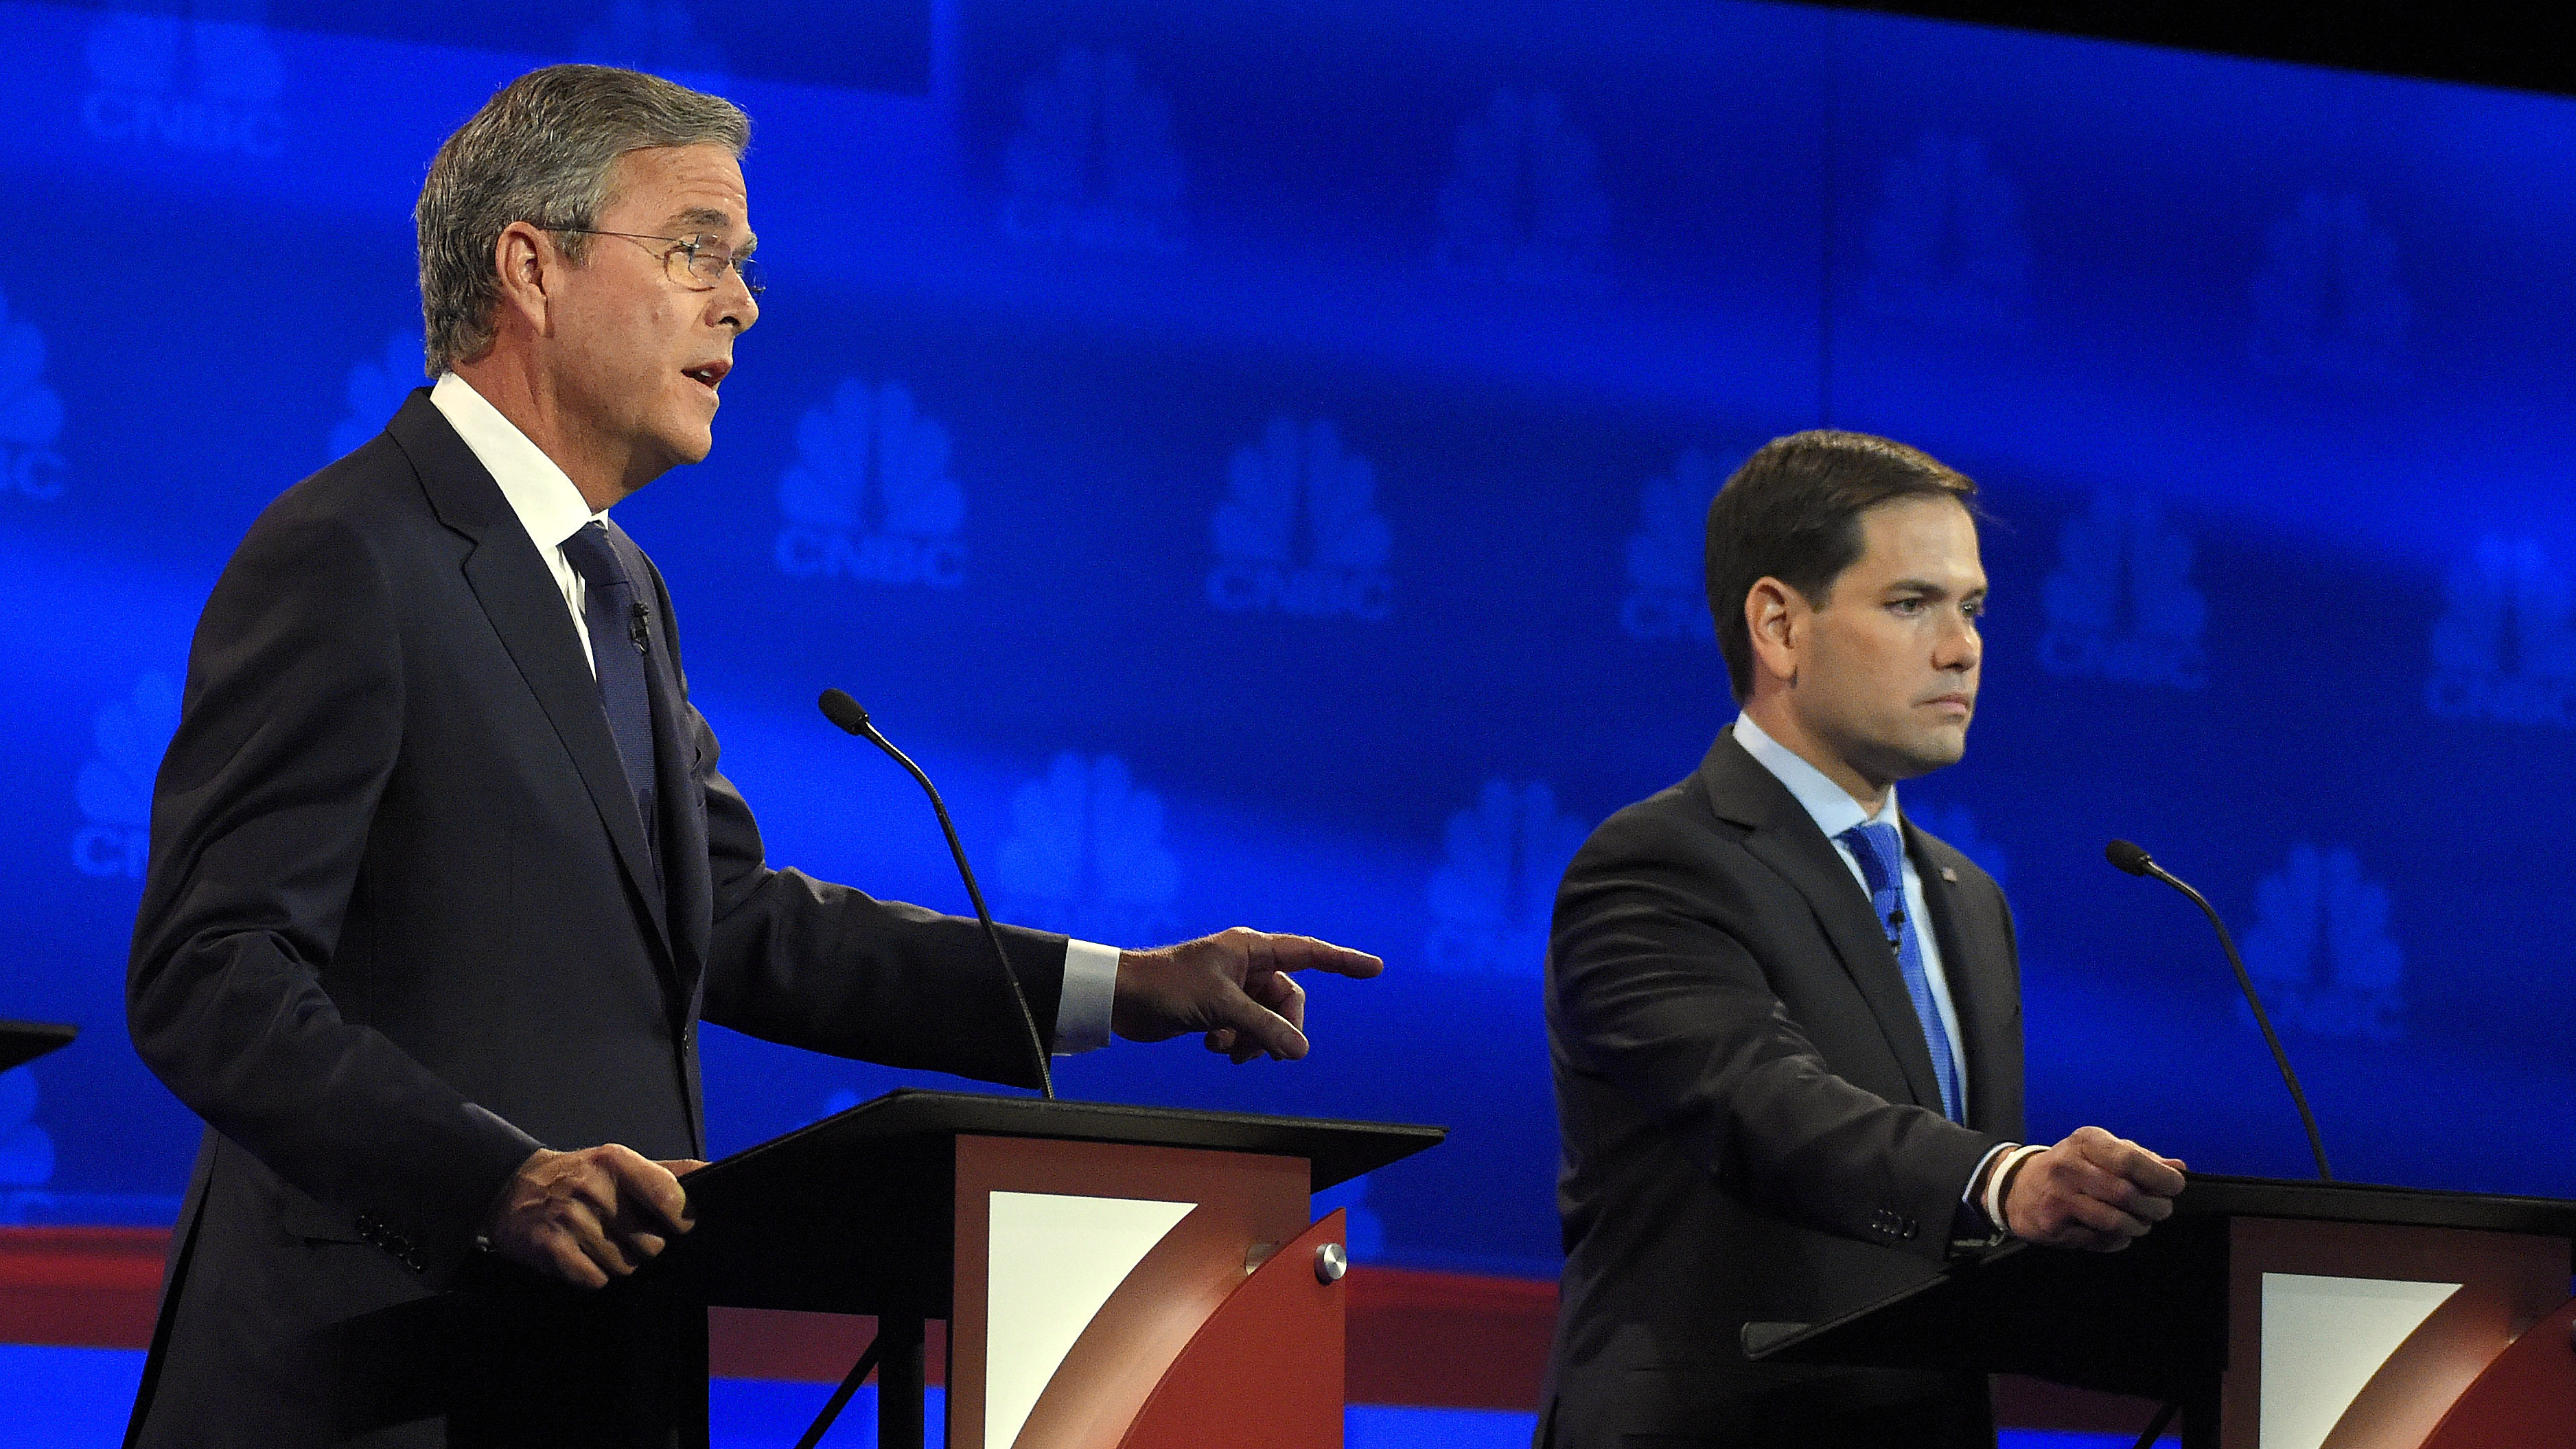 Jeb Bush (left) and Marco Rubio at the CNBC Republican presidential debate Wednesday. Their battling of late is leaving some Florida Republicans with an uncomfortable choice. (Photo by Mark J. Terrill/AP)